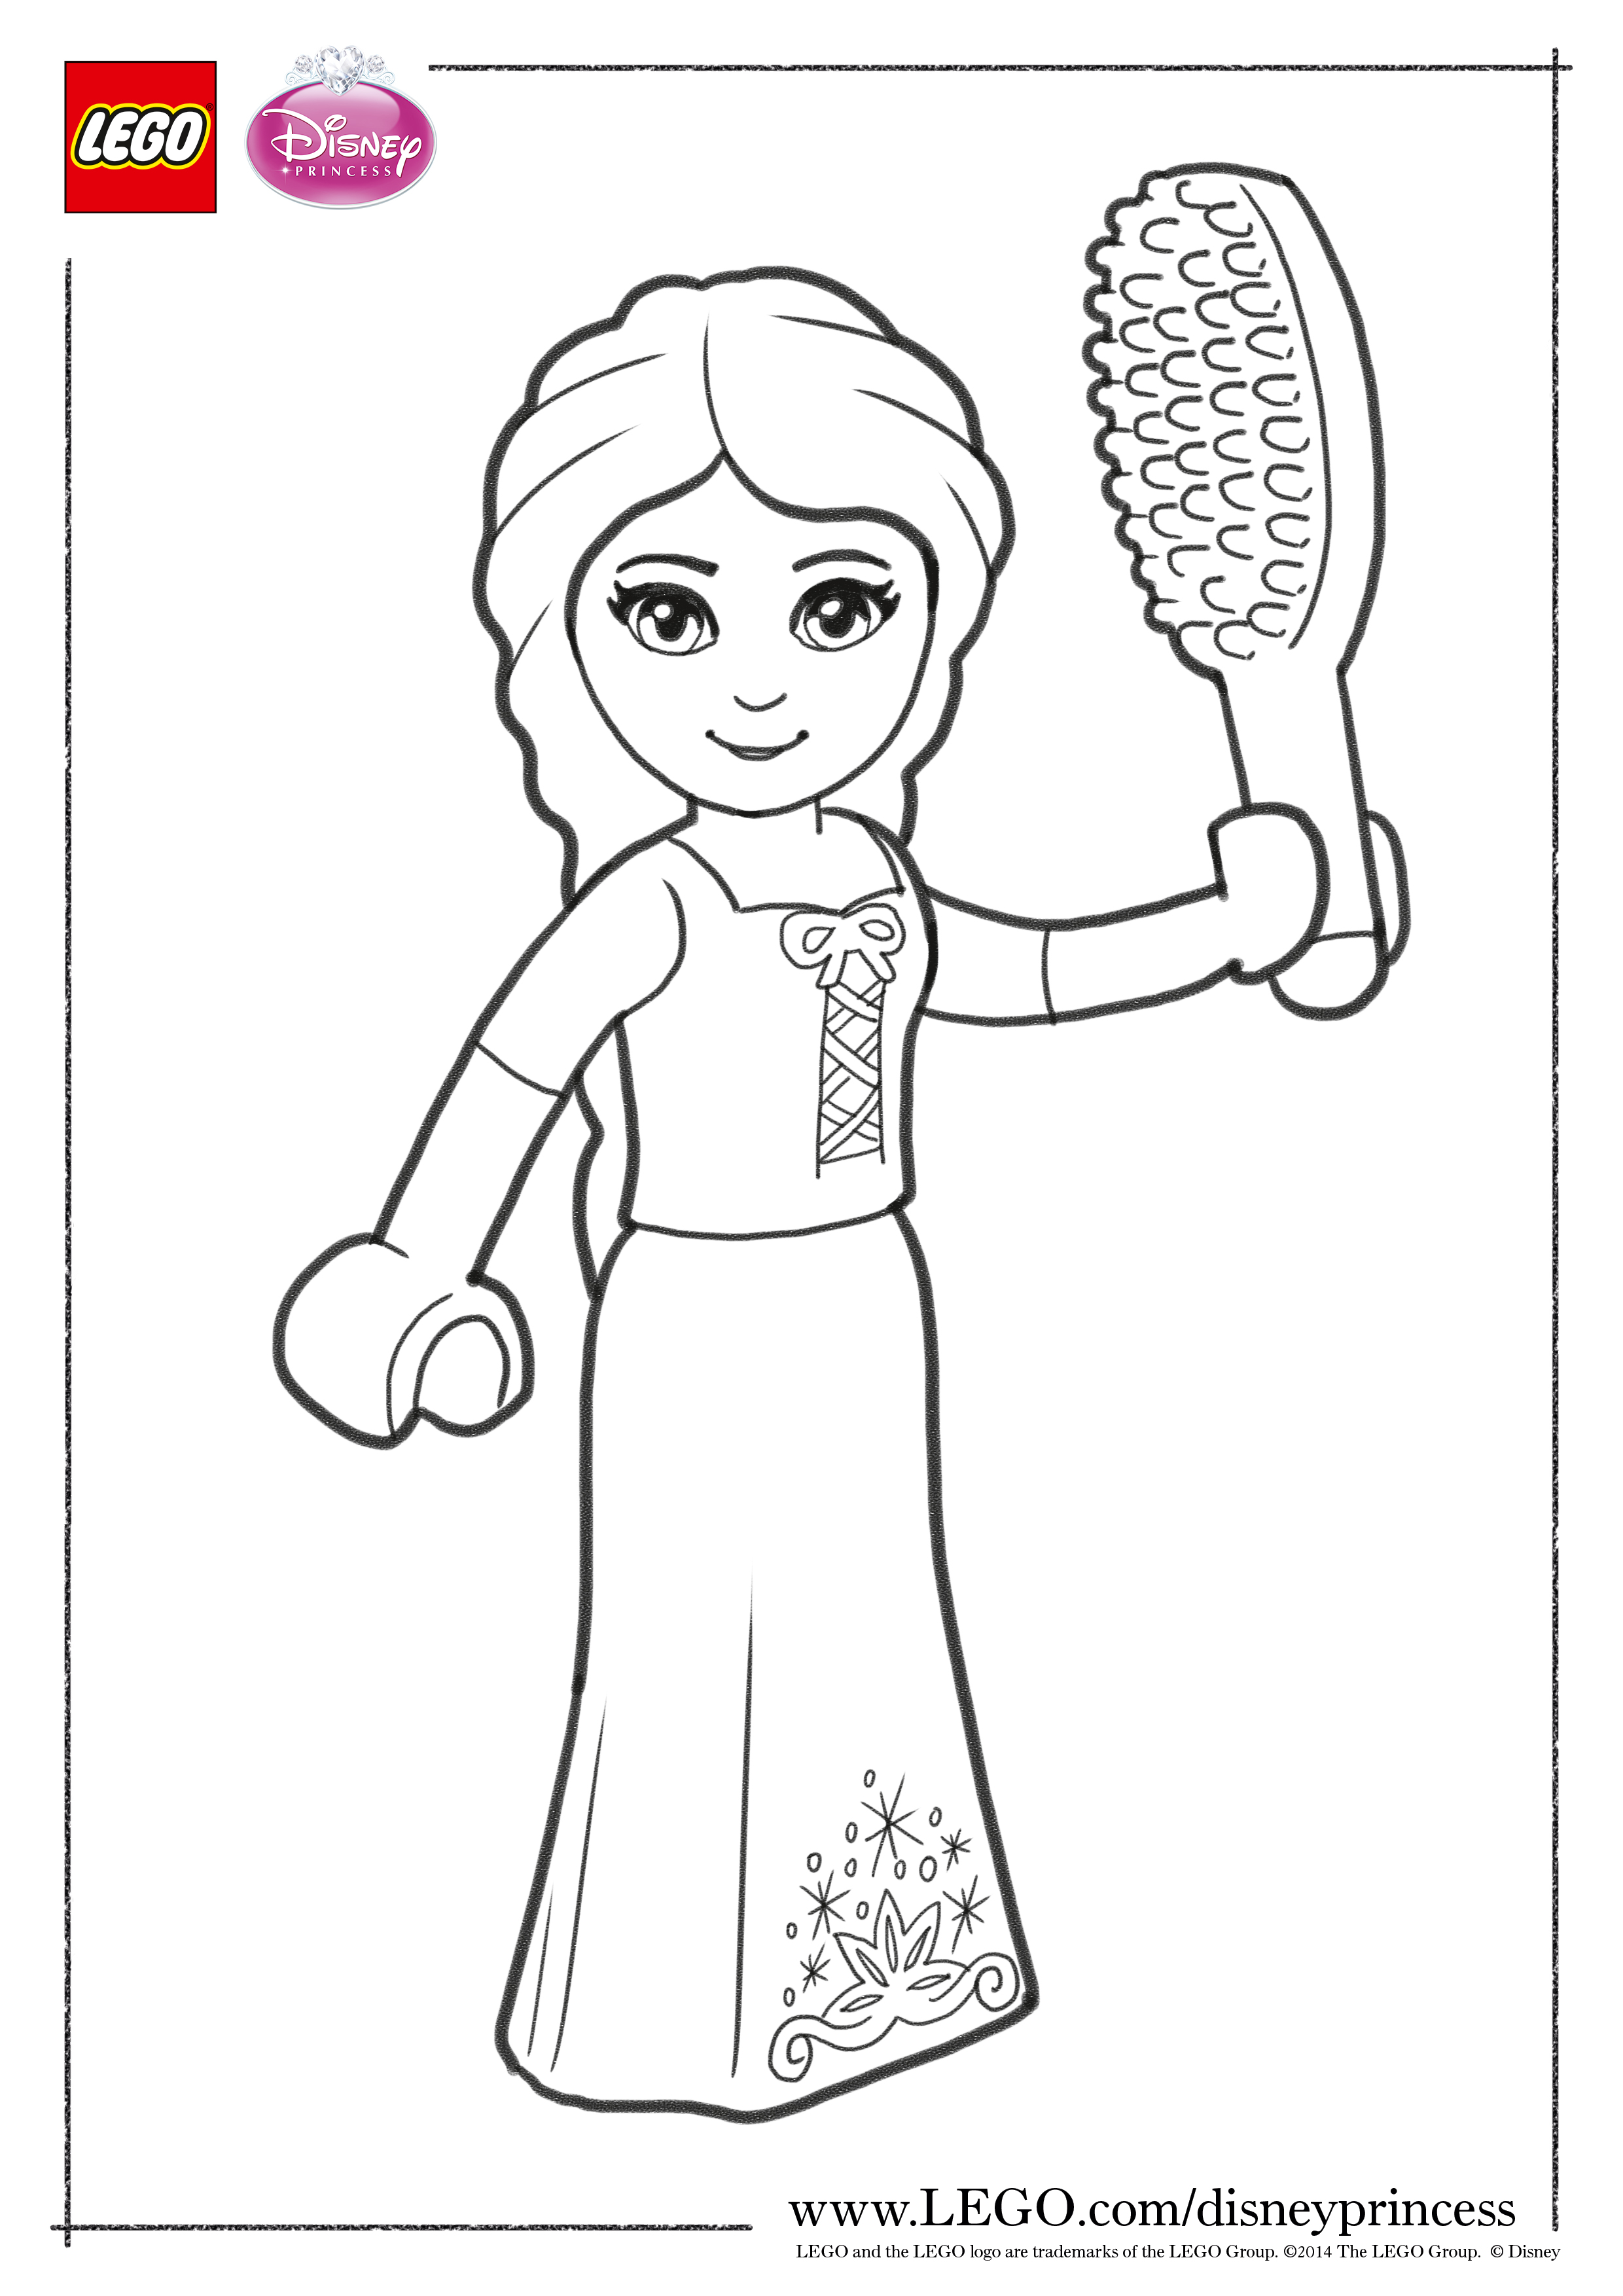 Lego Disney Princess Coloring Pages The Family Brick